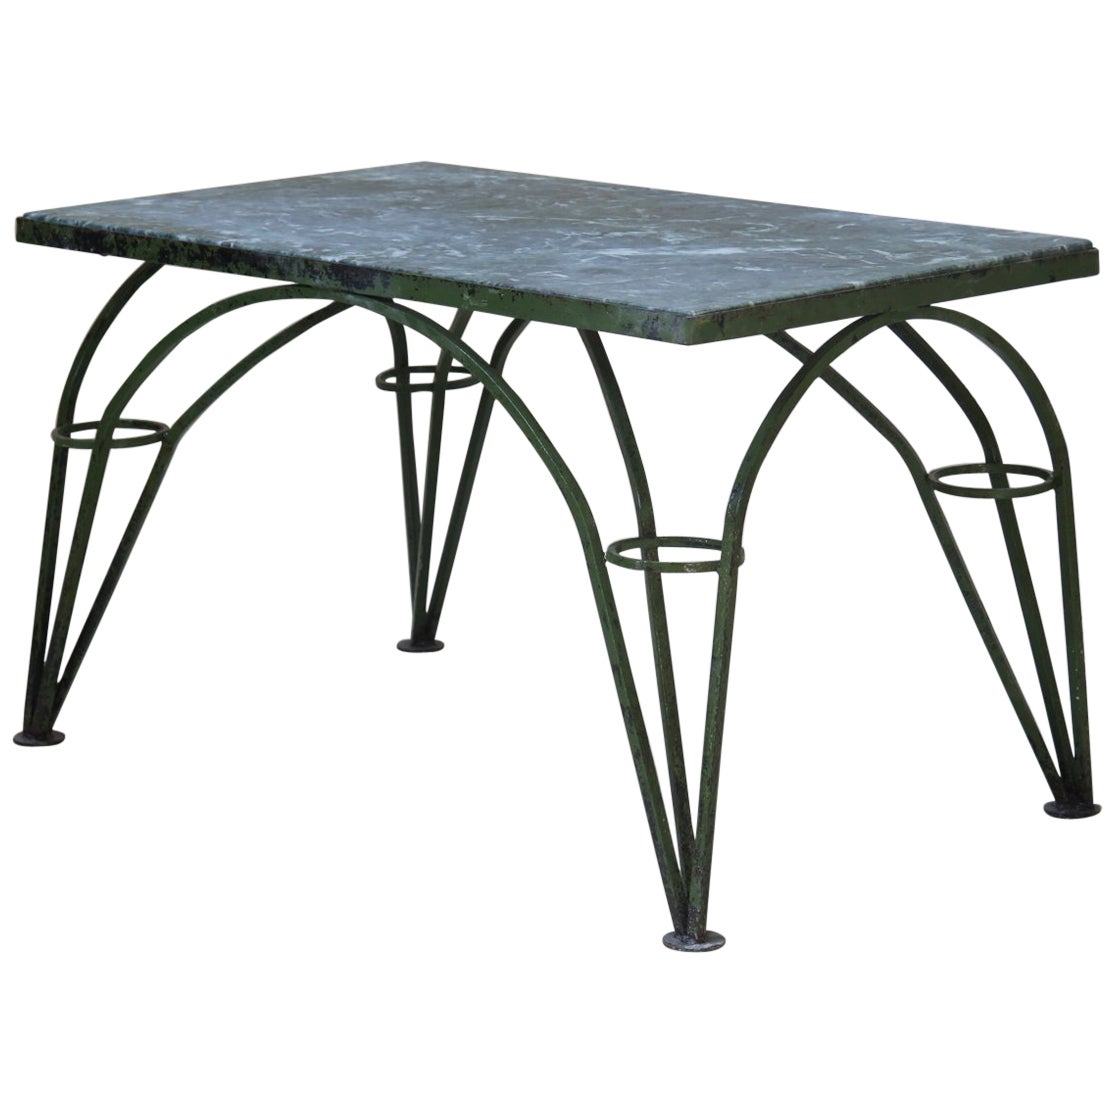 French 1950s Green Painted Iron Coffee Table